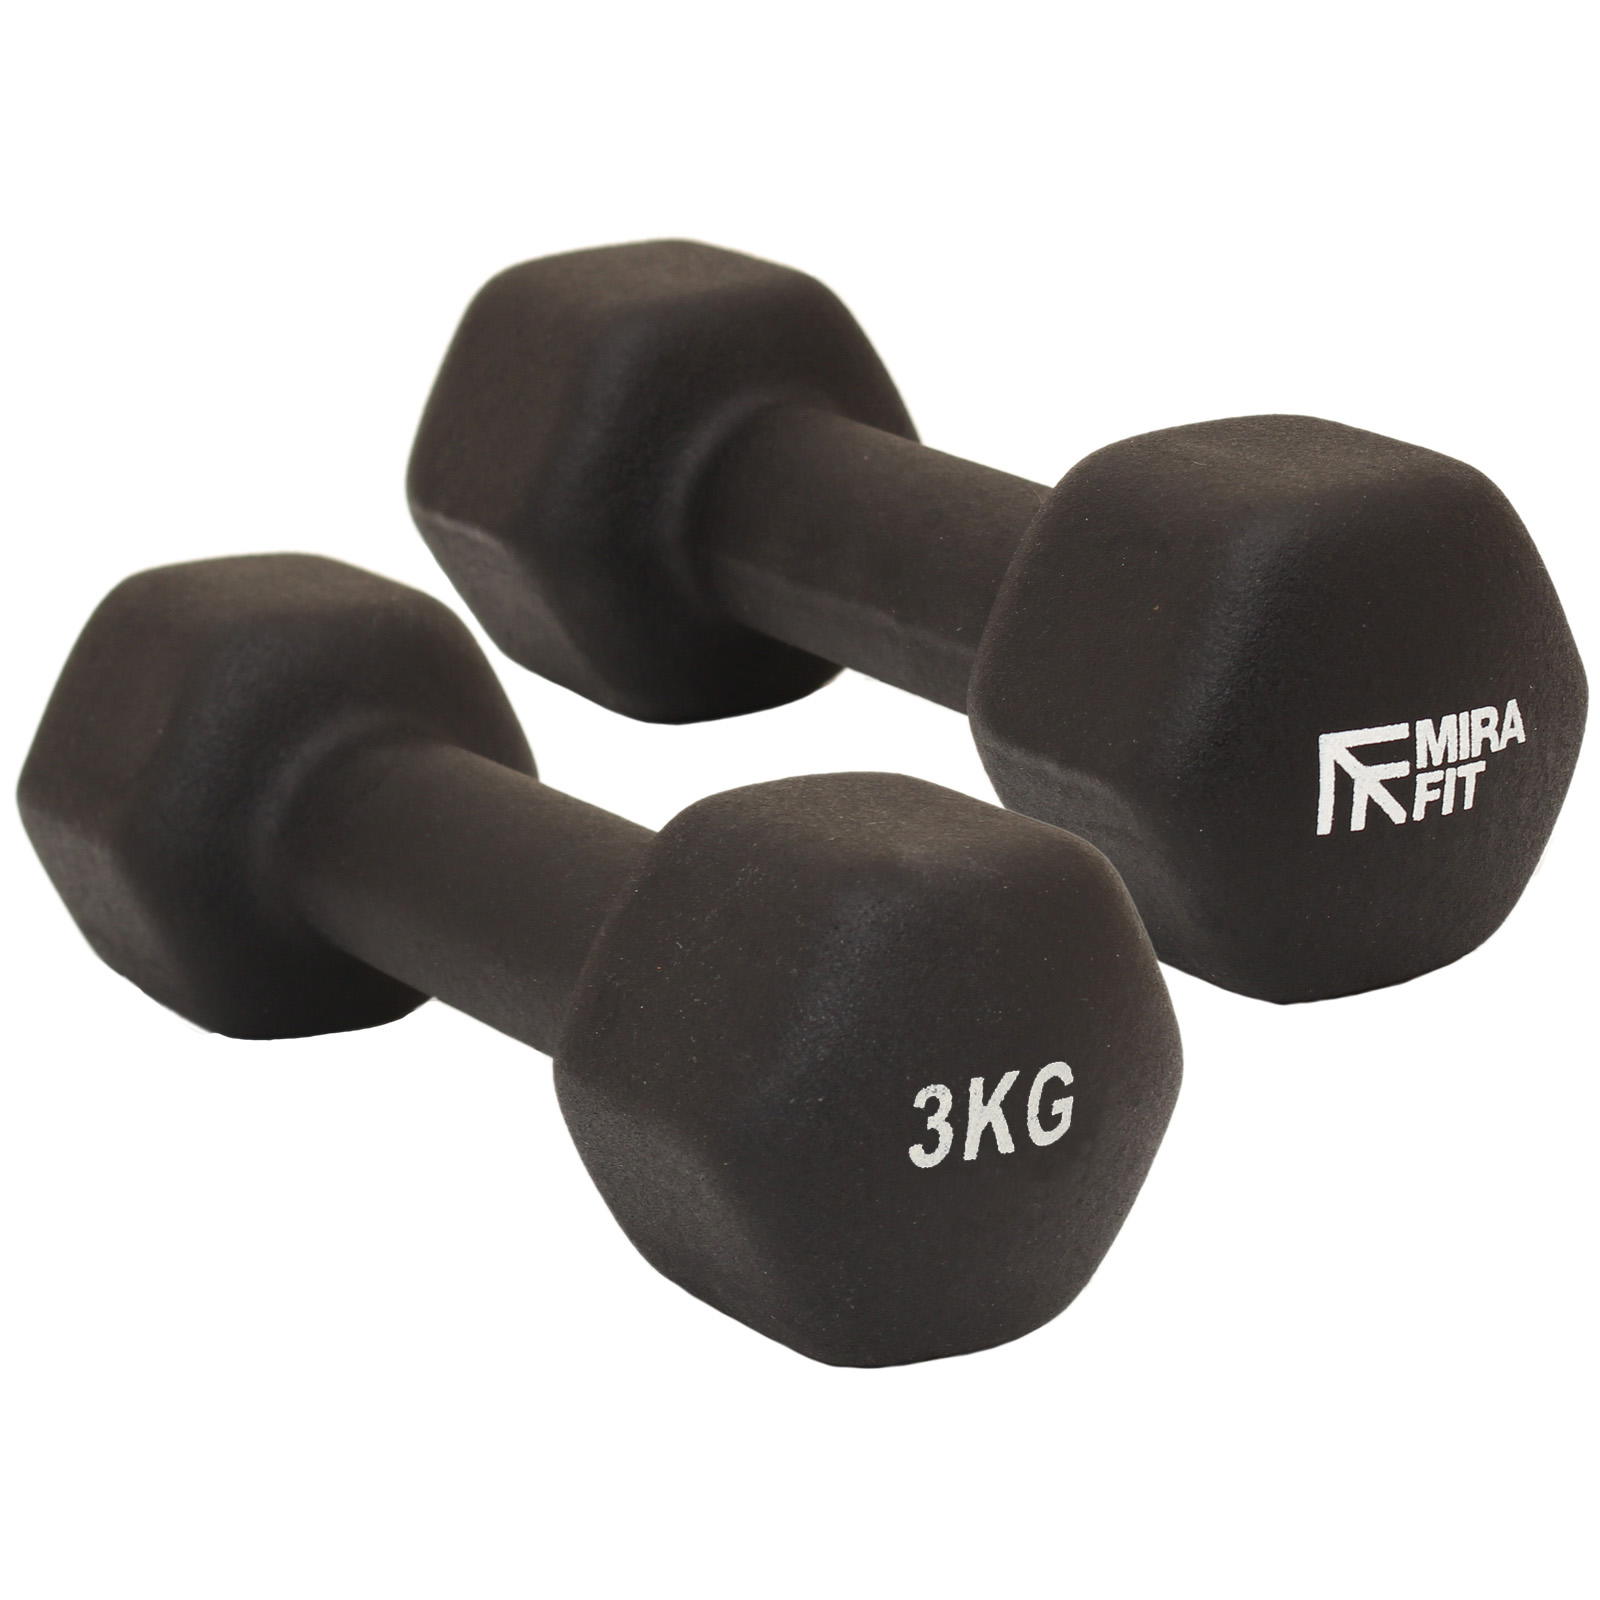 Mirafit Hex Dumbbells Weights Aerobic Gym Exercise